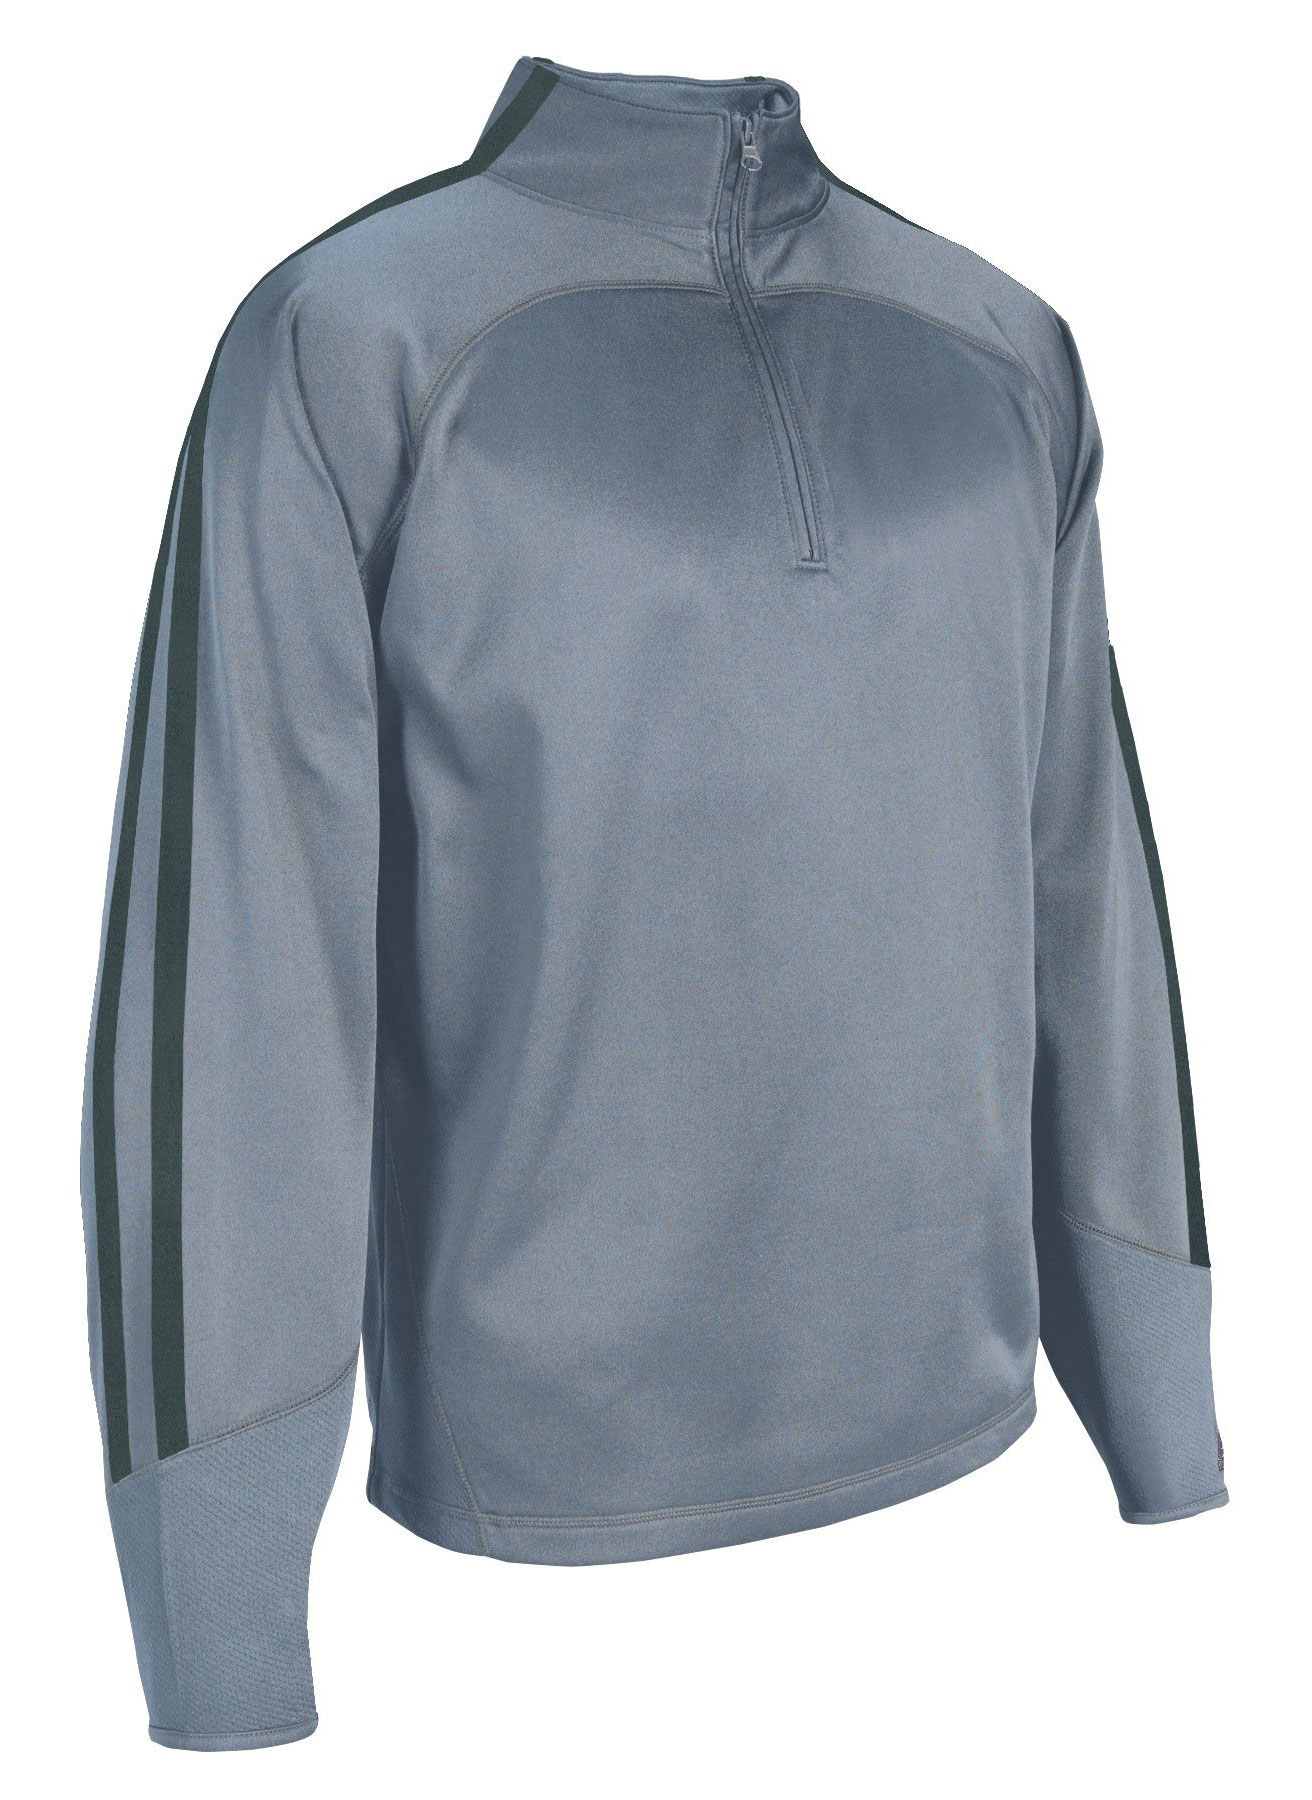 Russell Athletic Tech Fleece 1/4 Zip Jacket